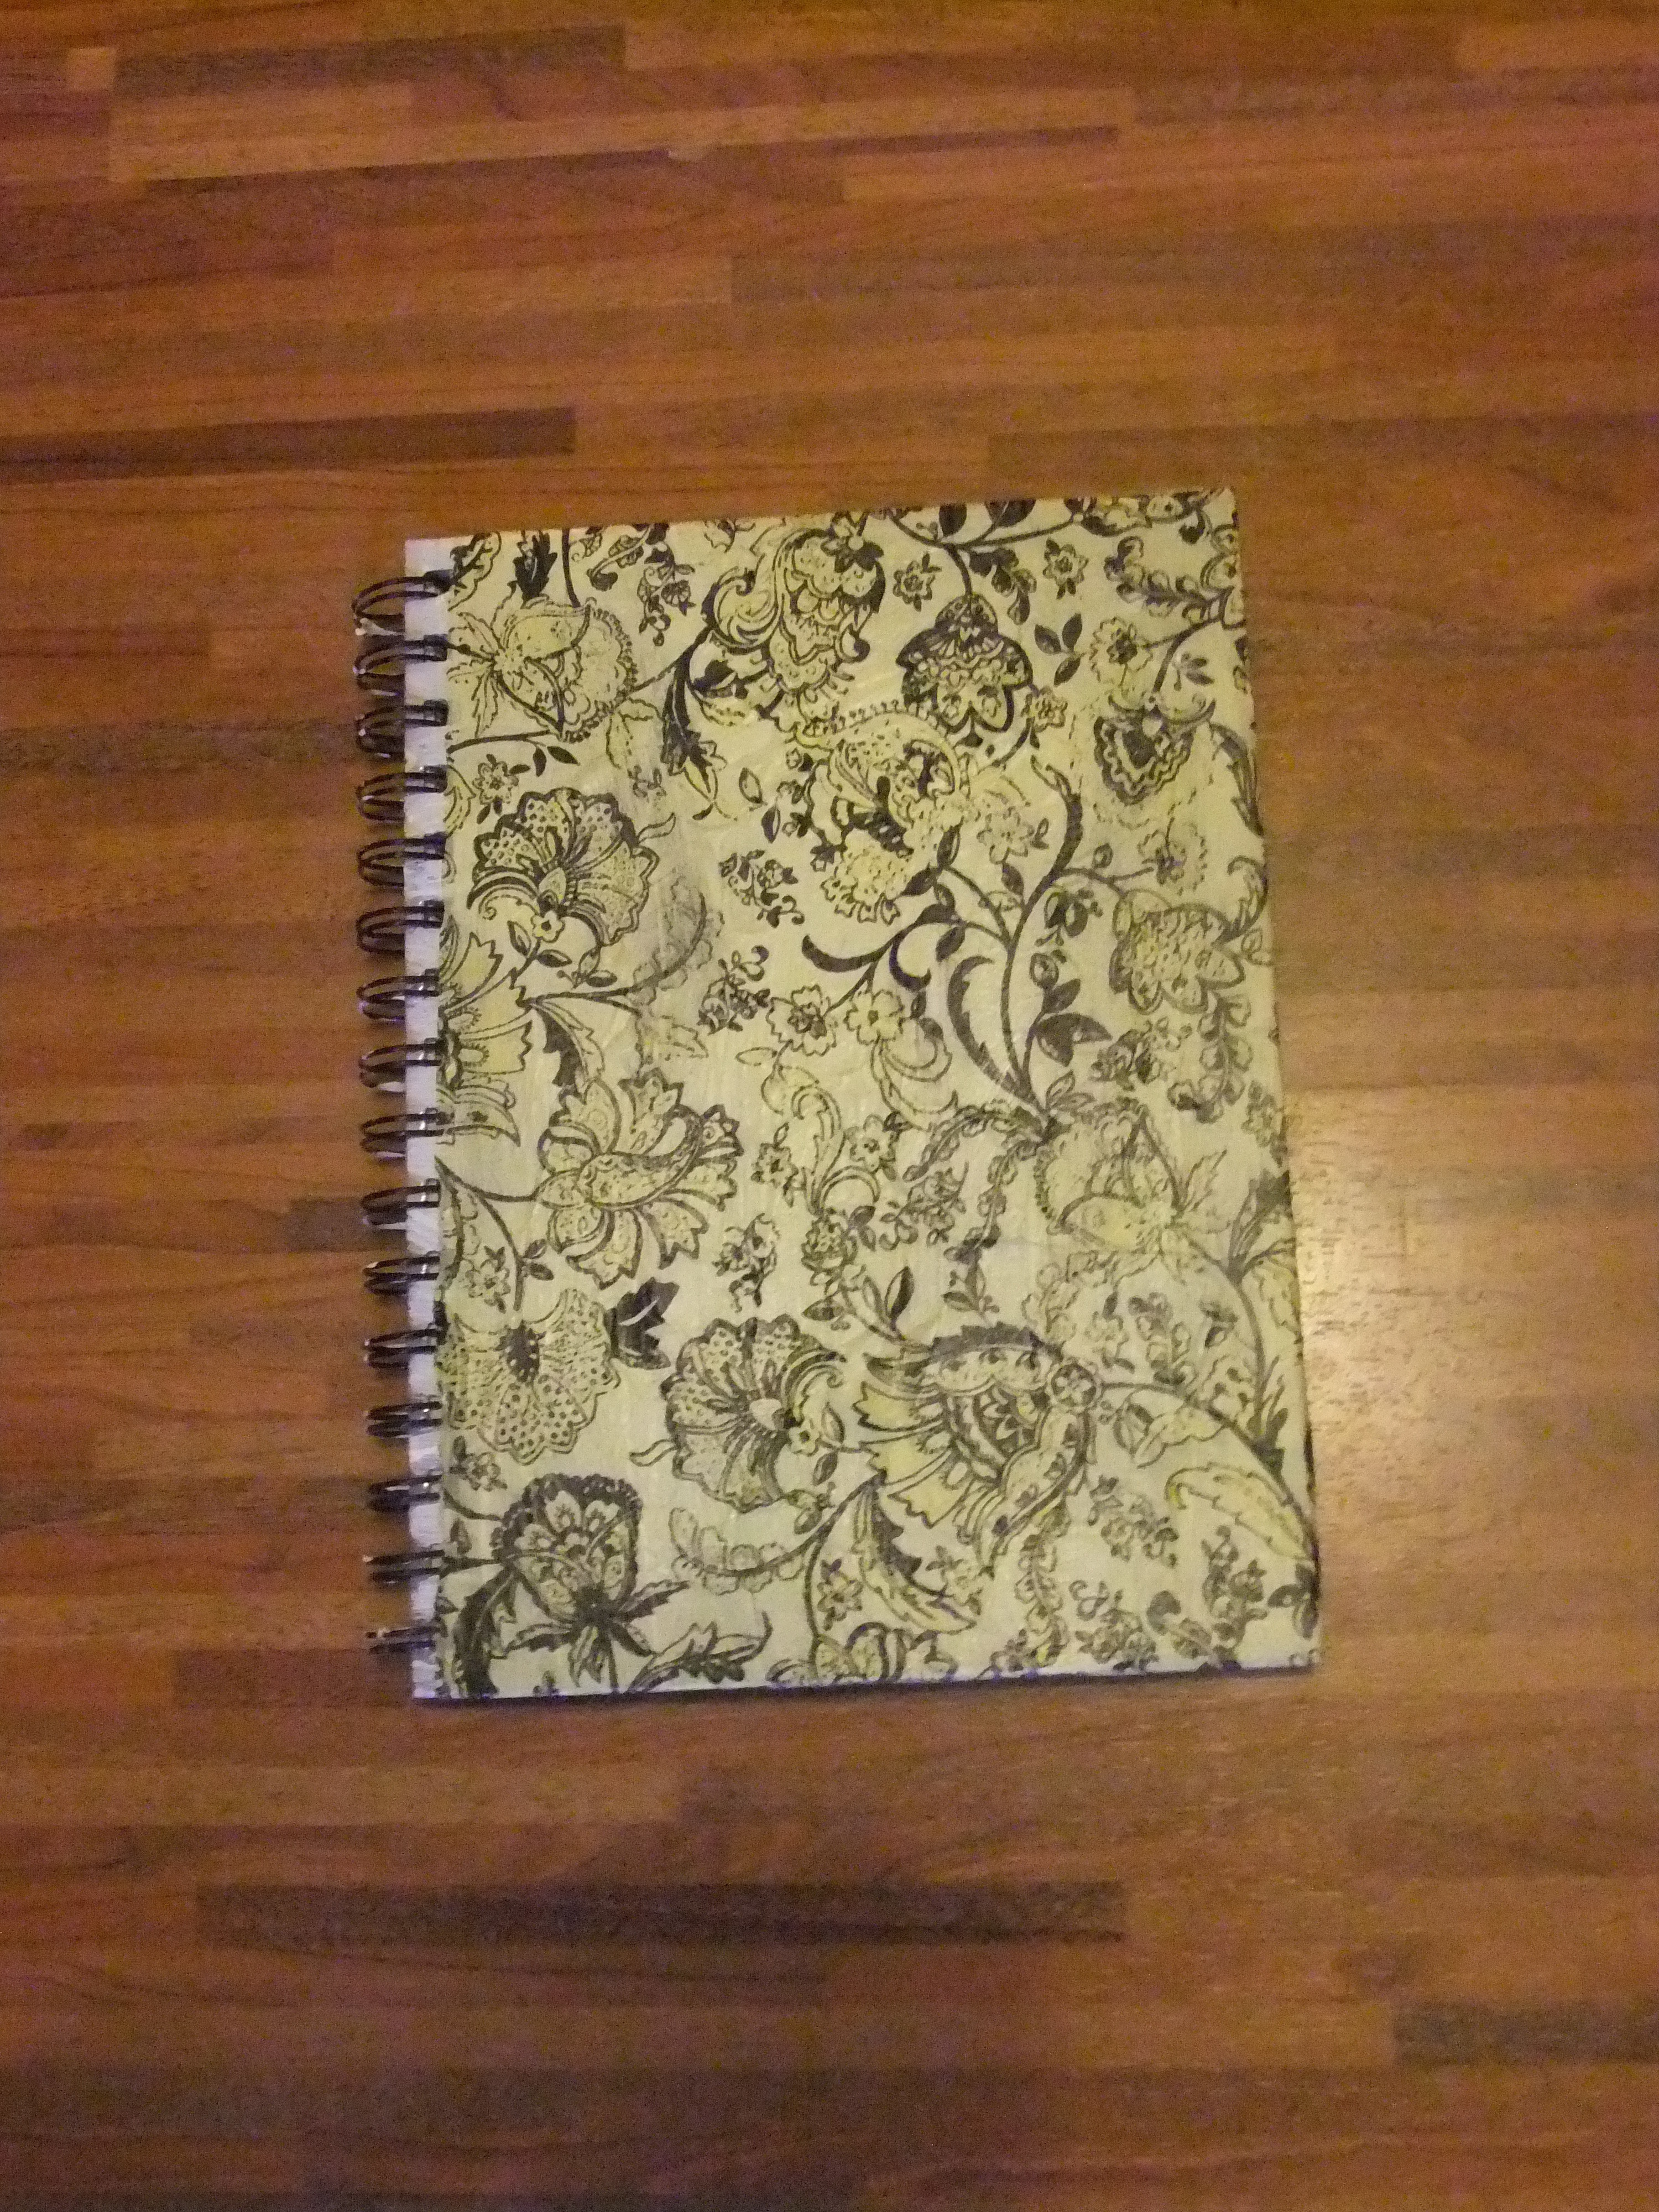 Paper Book Cover Tutorial : Notebook cover made of paper · how to make a book